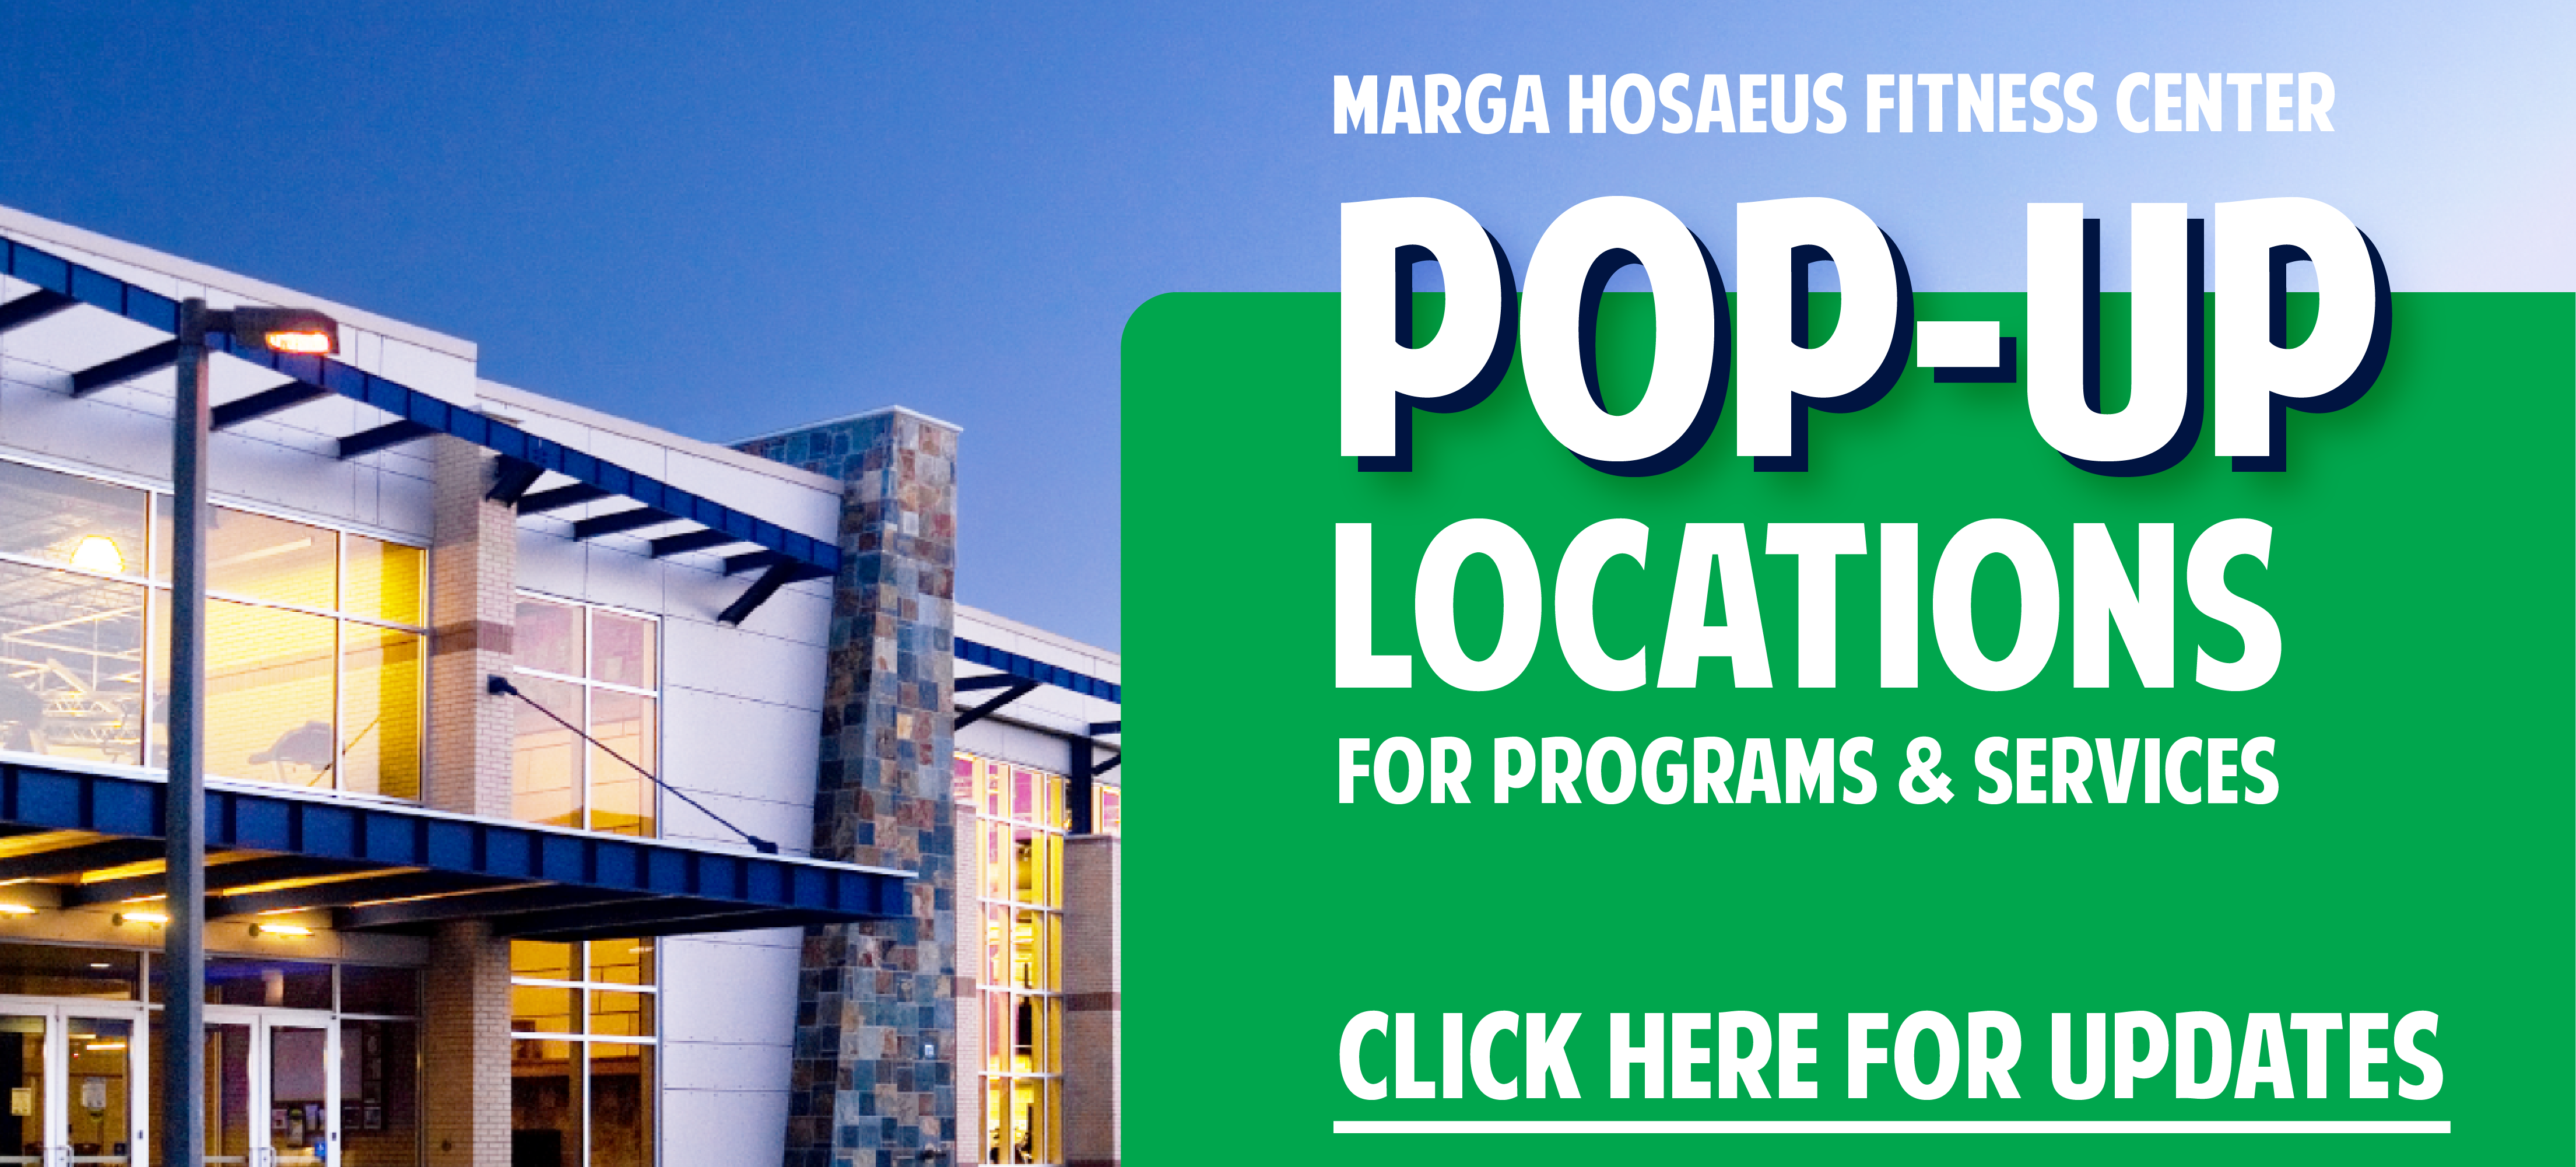 MHFC Pop-up Locations for programs and services updates link